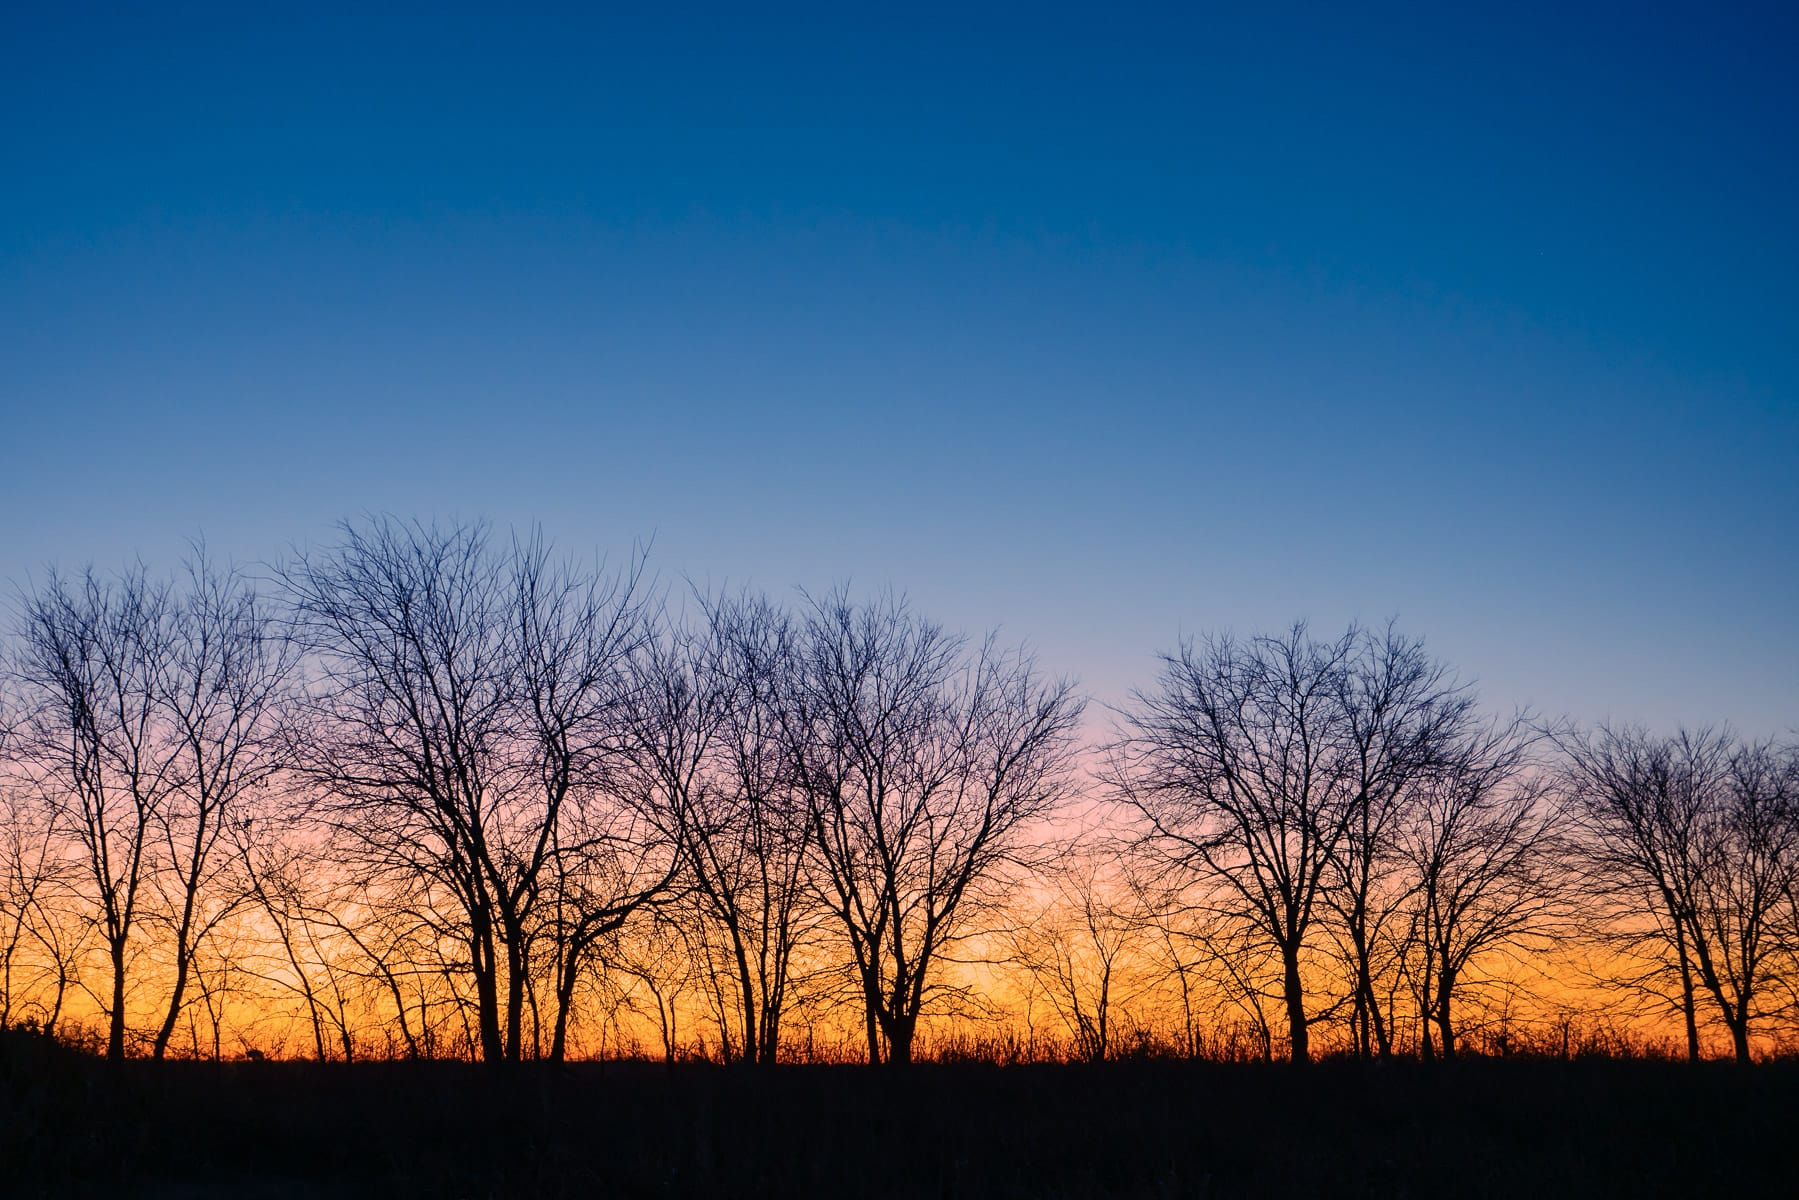 Trees are silhouetted by the sunrise at McKinney, Texas' Erwin Park.